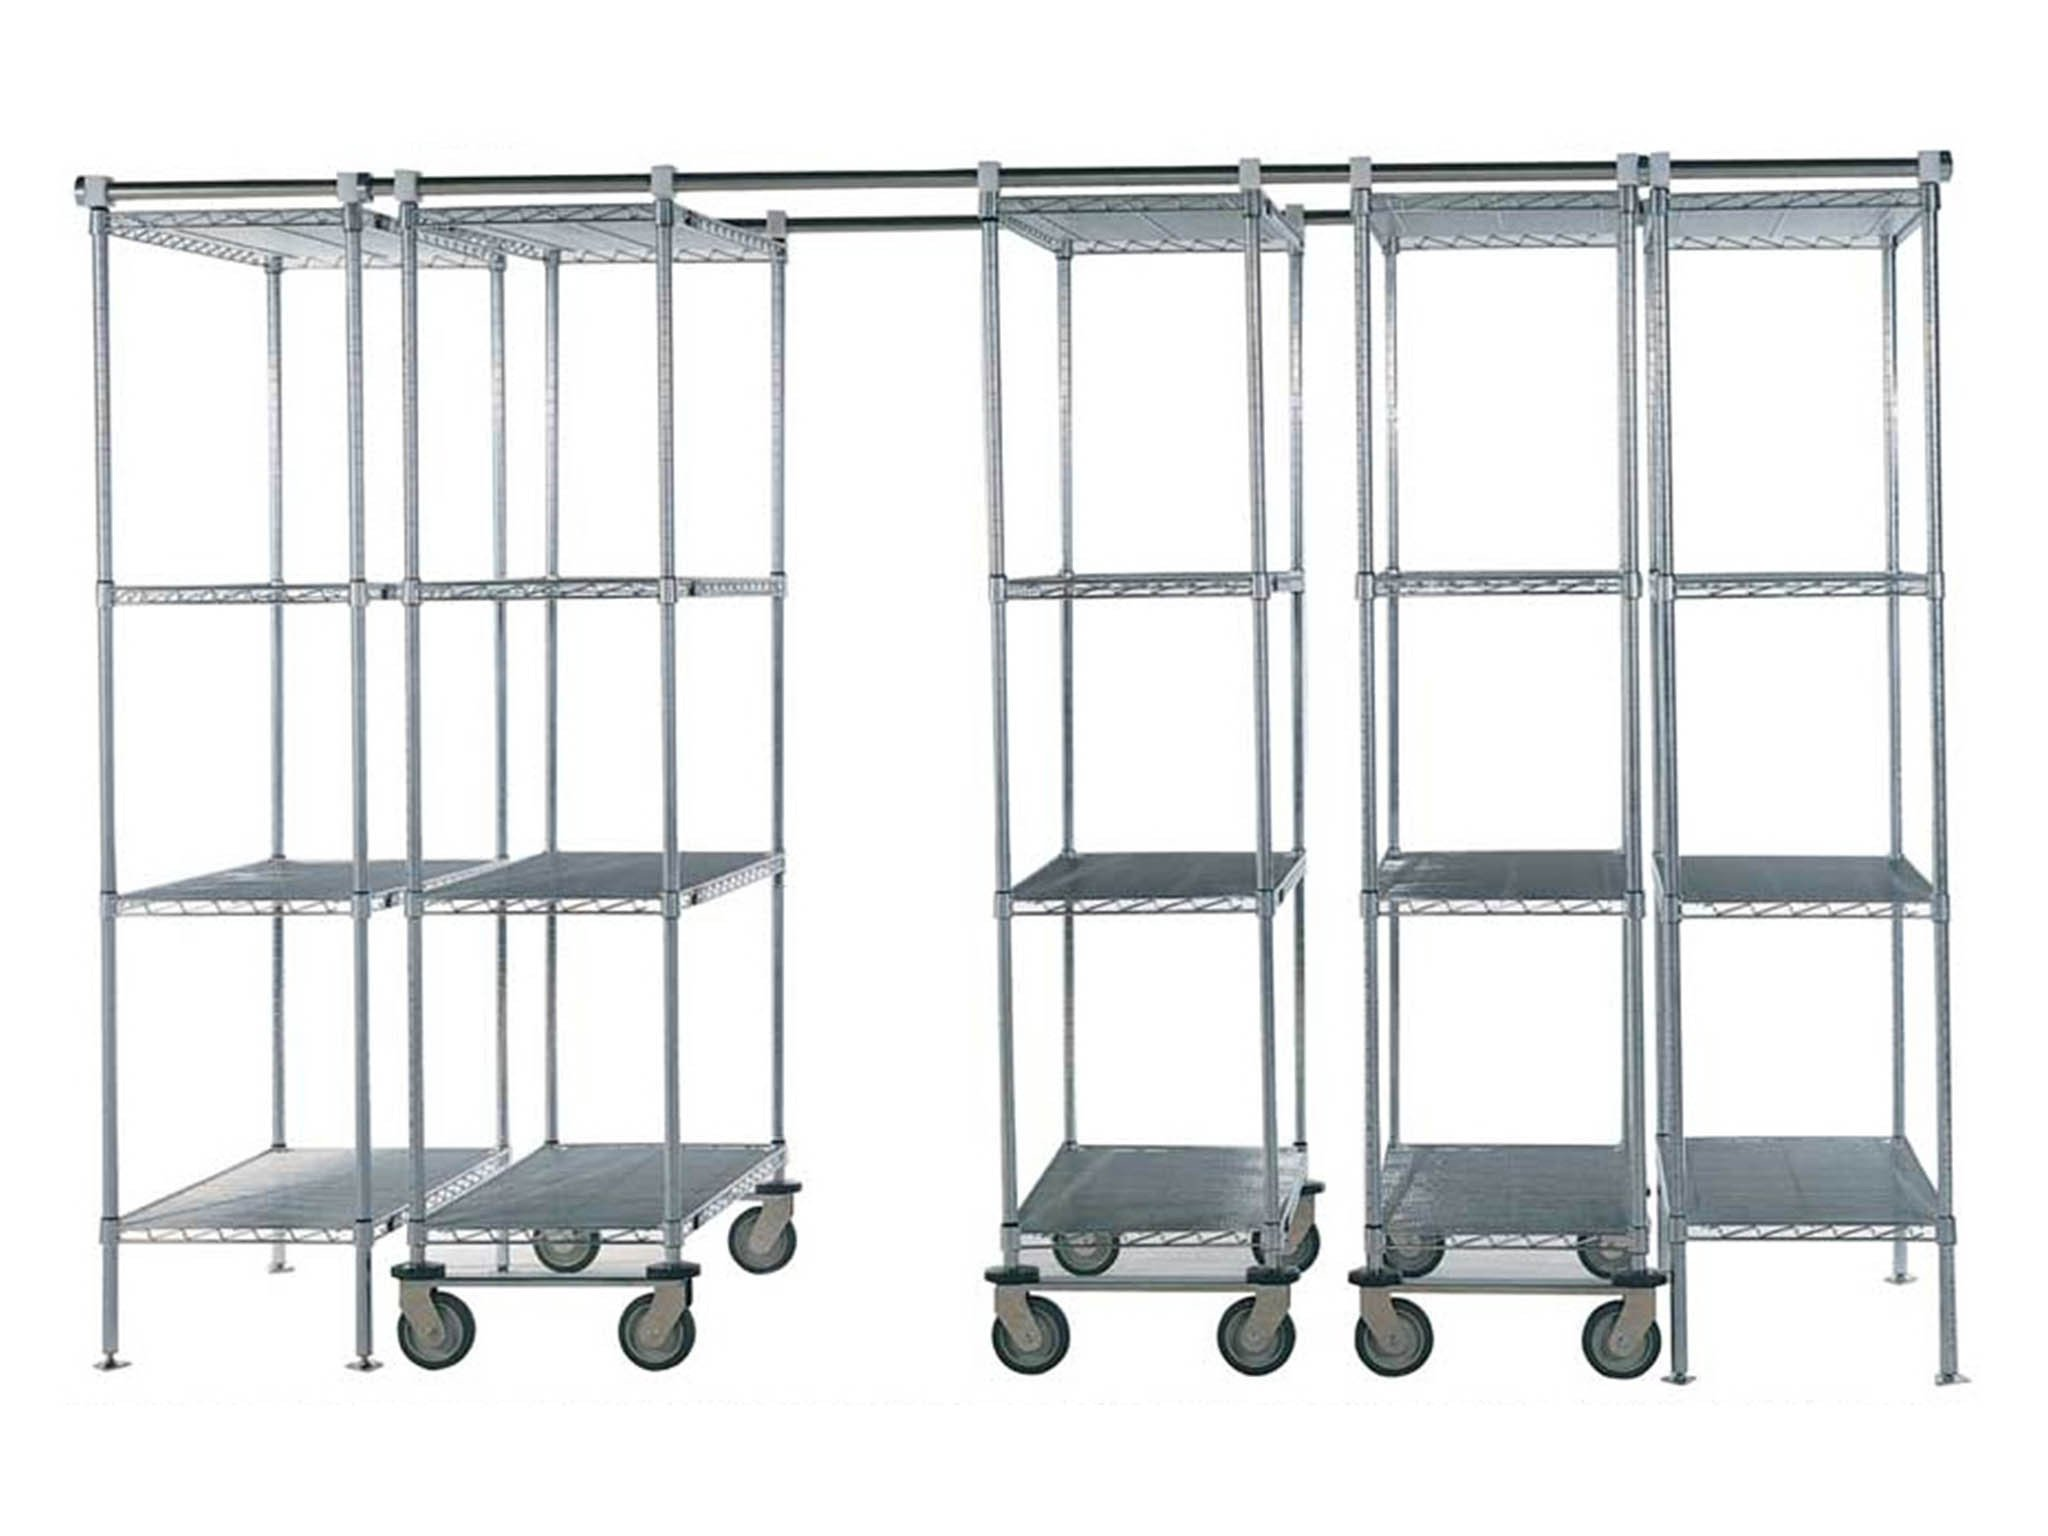 Factors That Make Modern Business Resort To Mobile Shelving